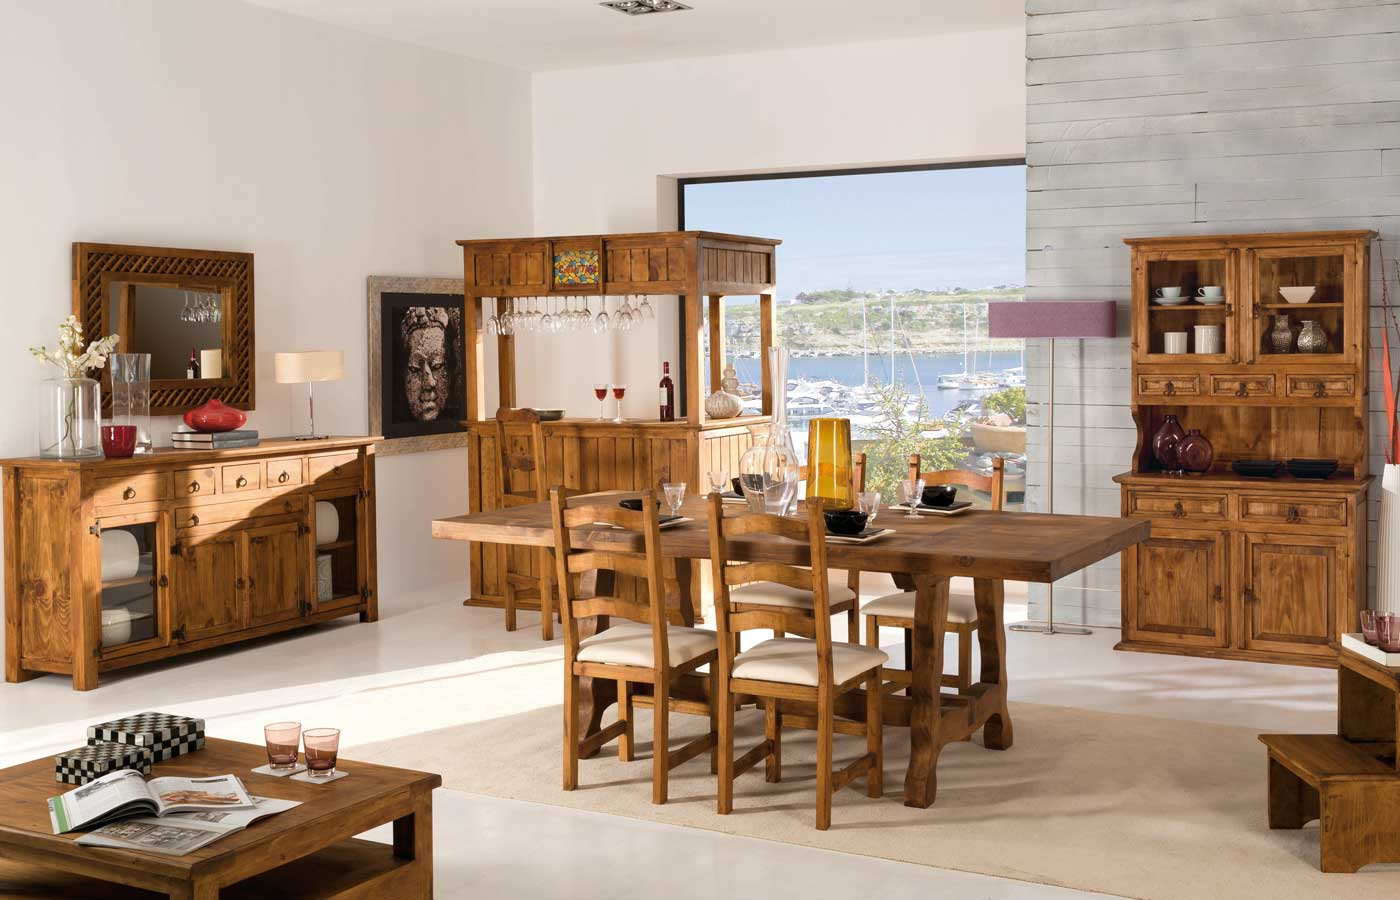 Muebles Rusticos Modernos. Muebles Rusticos Modernos With Muebles ...